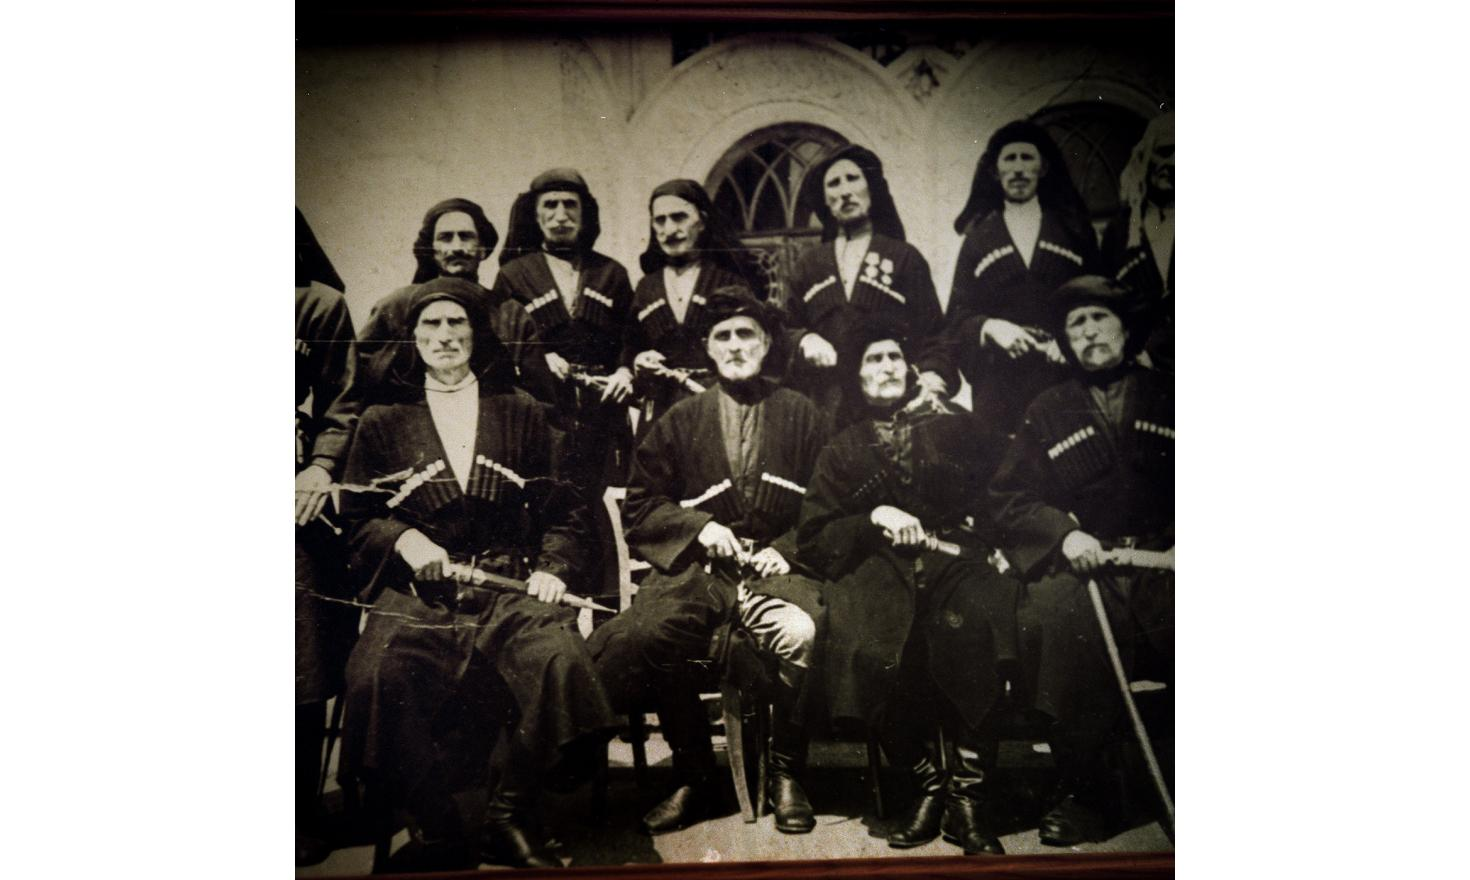 A detail of an old photo of a traditional Abkhaz family